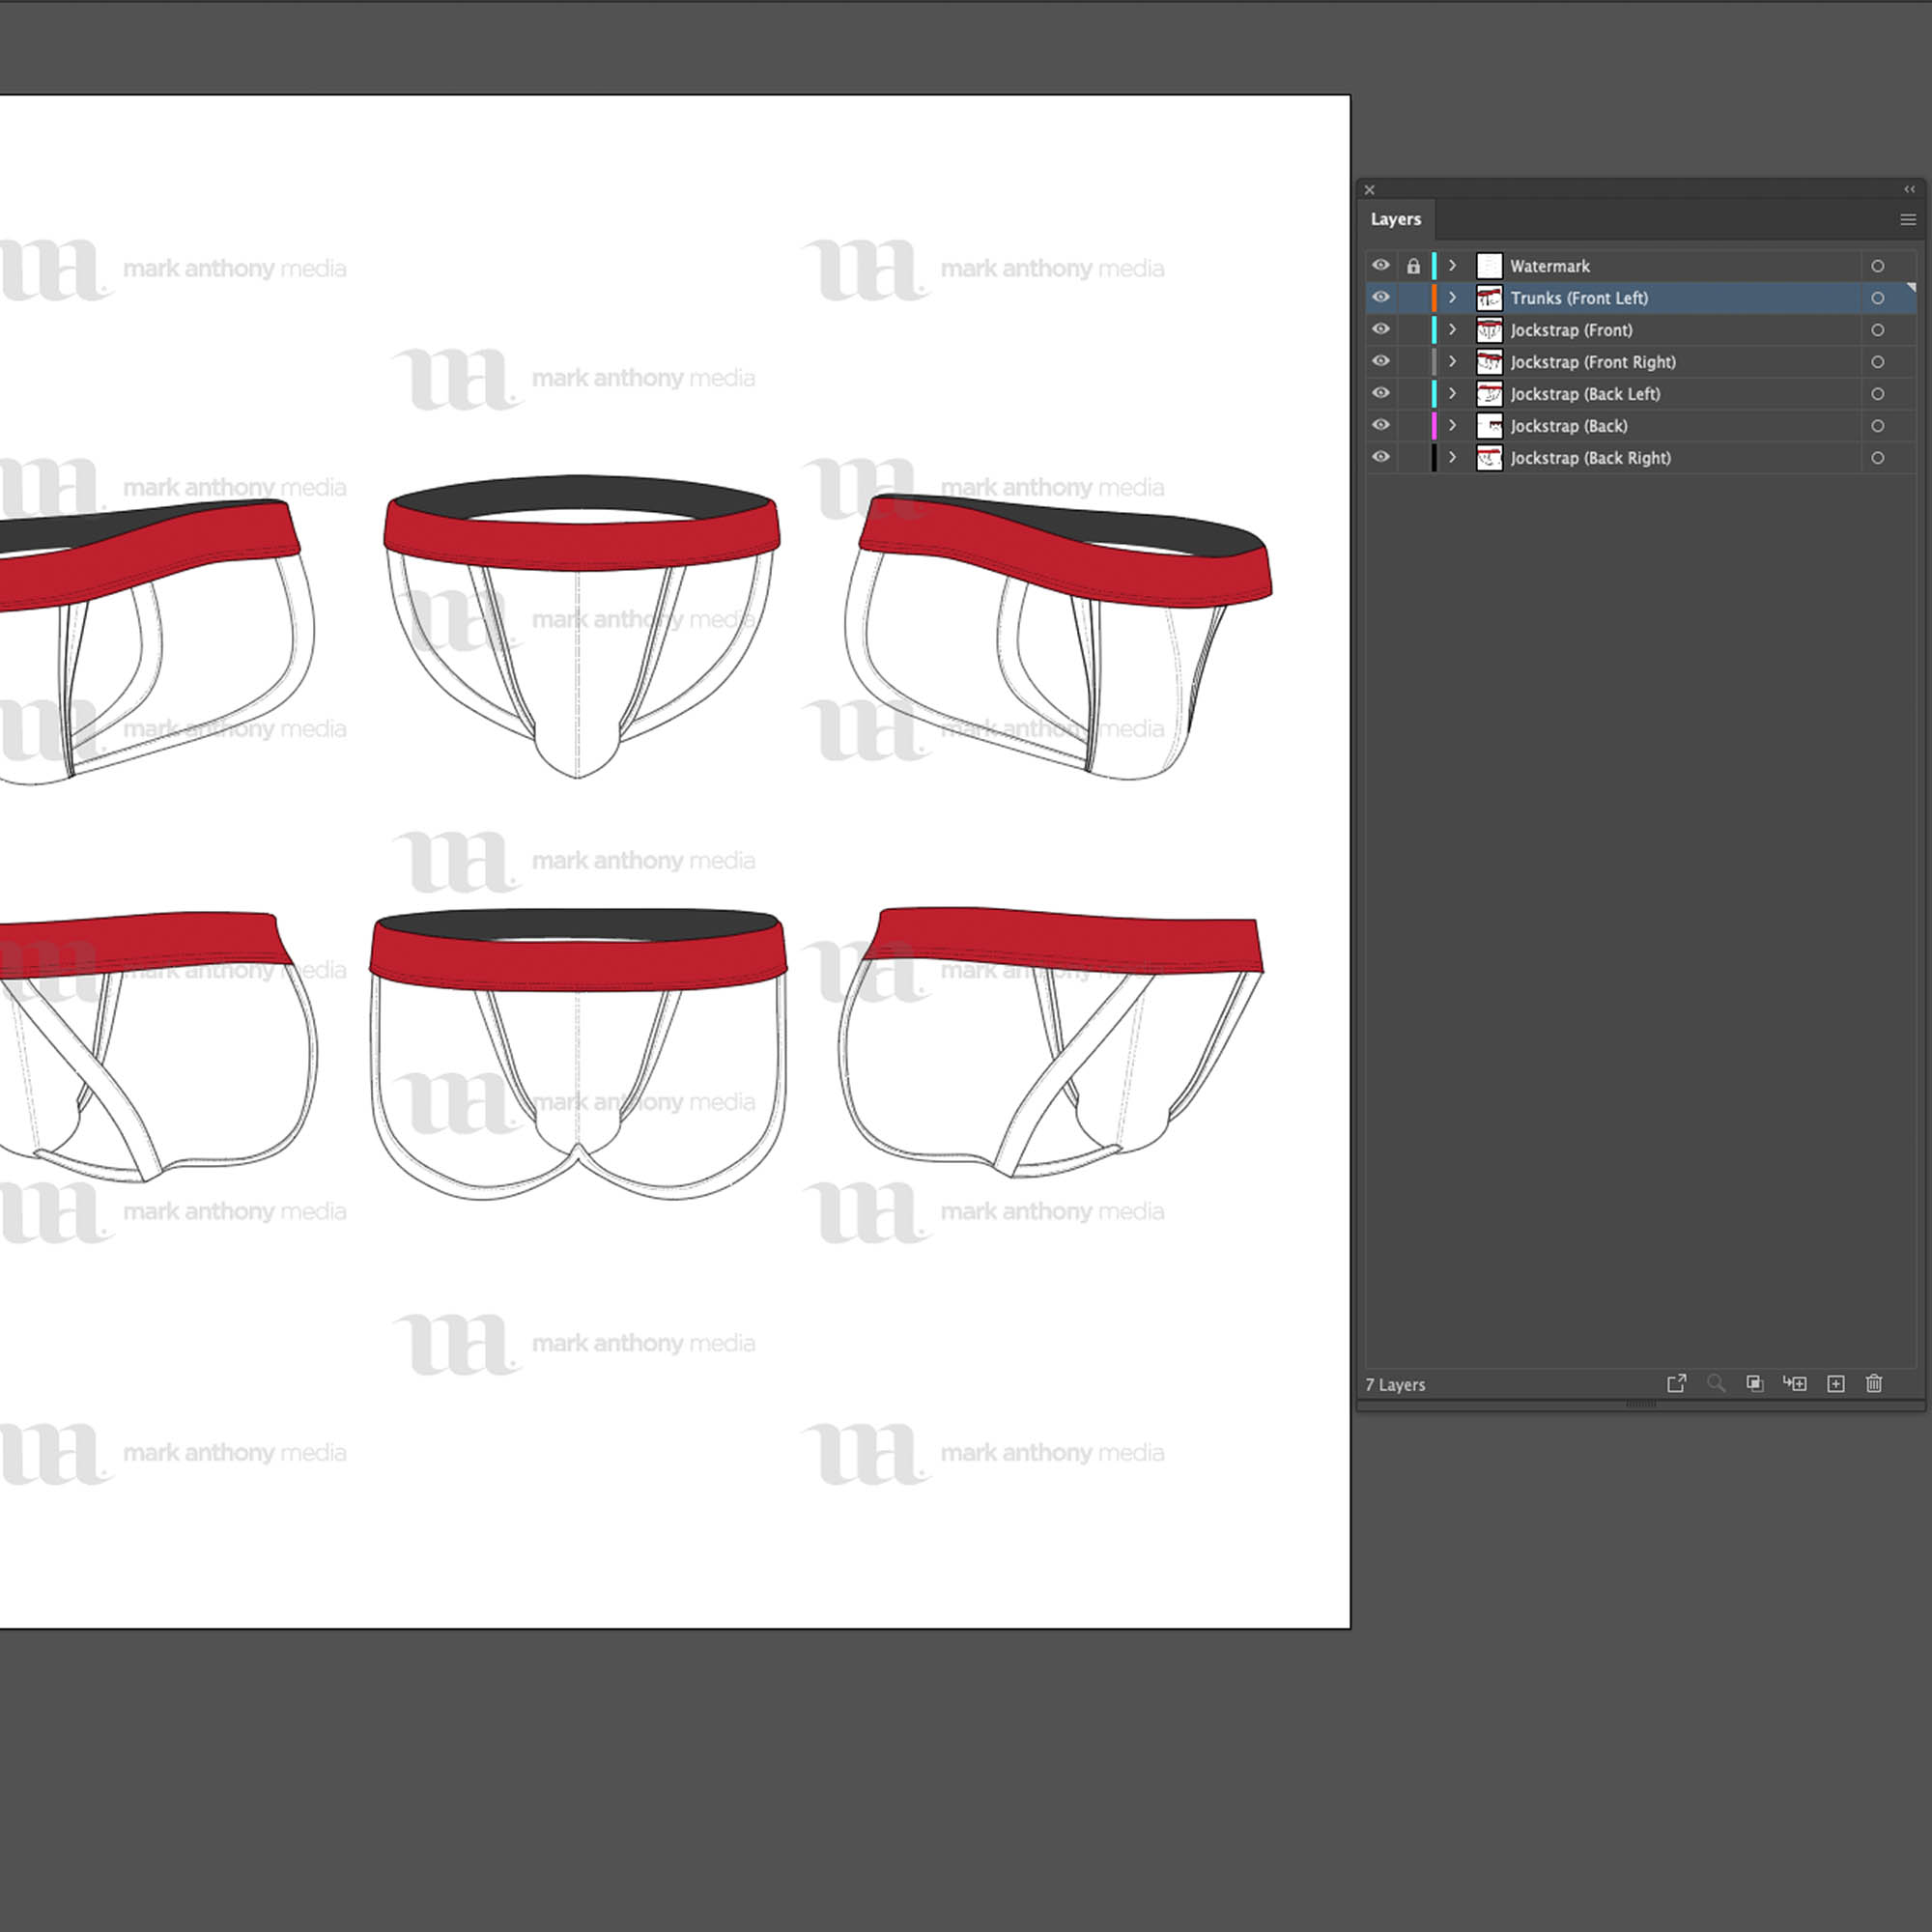 Jockstrap - Mockup and Template - 6 Angles, 1 Style, Layered, Detailed and Editable Vector in EPS, SVG, AI, PNG, DXF and PDF